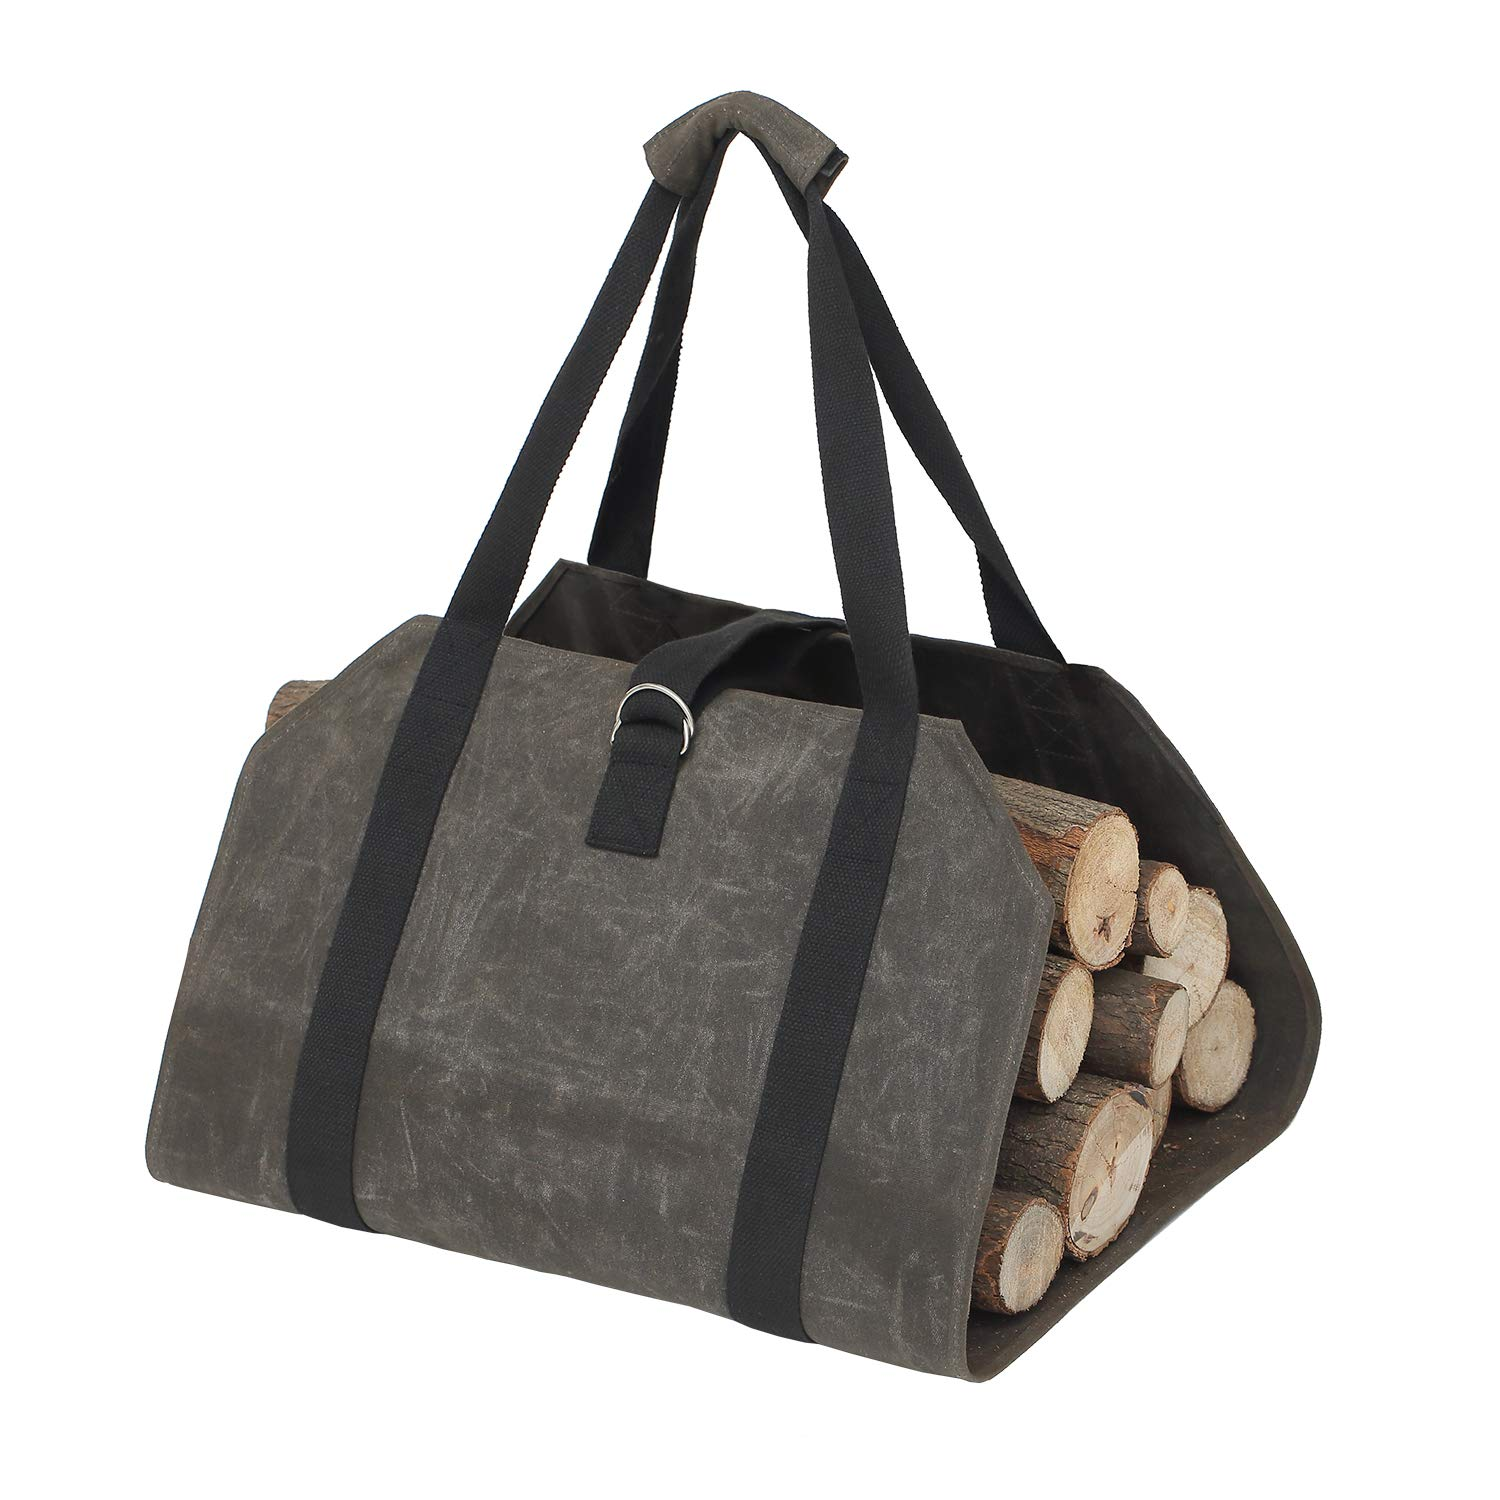 Elezay Waxed Canvas Toto Bag Firewood Log Carrier Outdoor Indoor Holders Fireplace